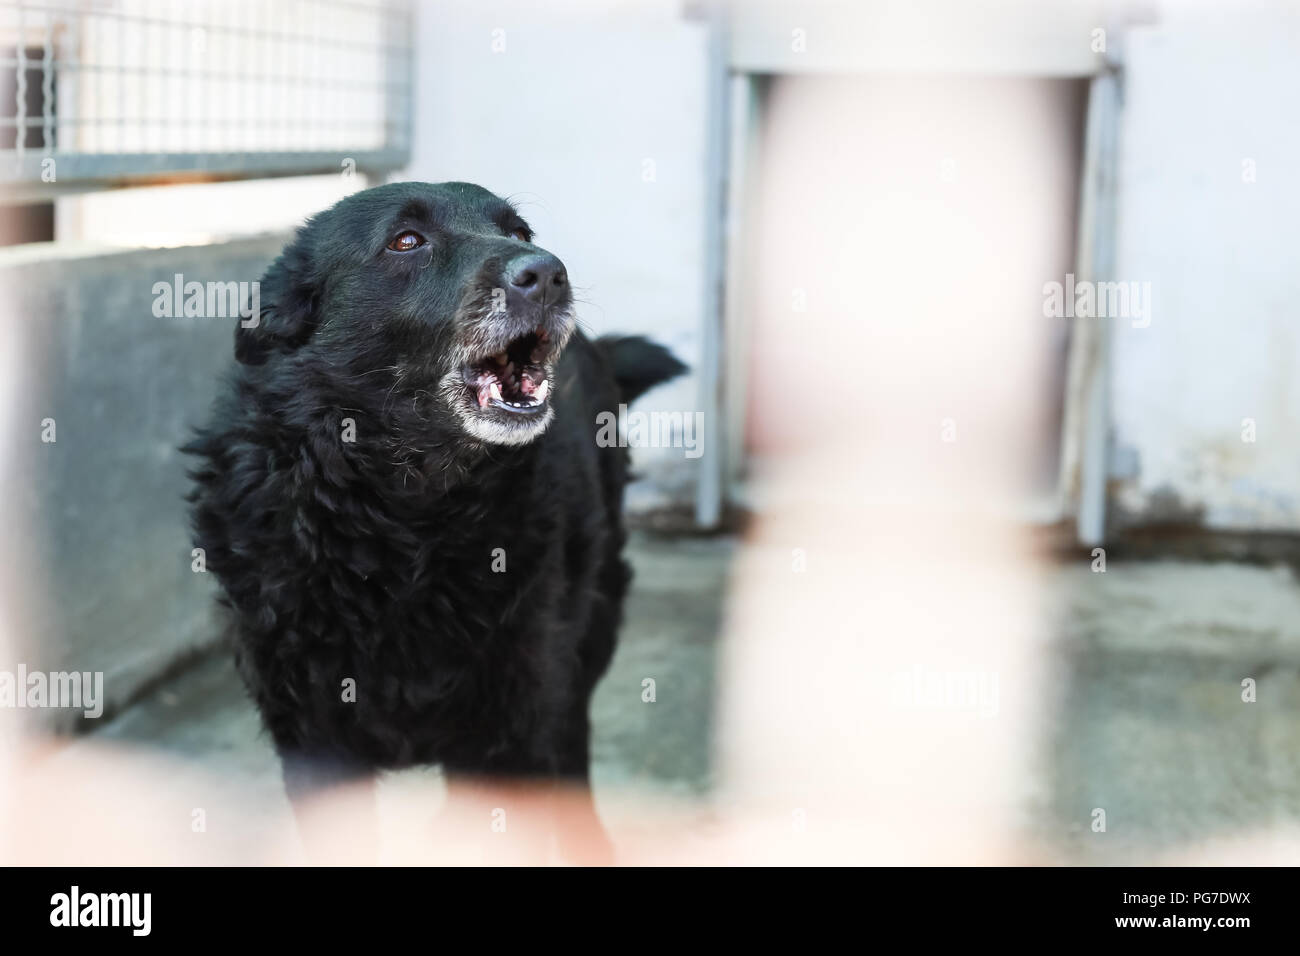 Dog in an animal shelter waiting for someone to adopt them. - Stock Image